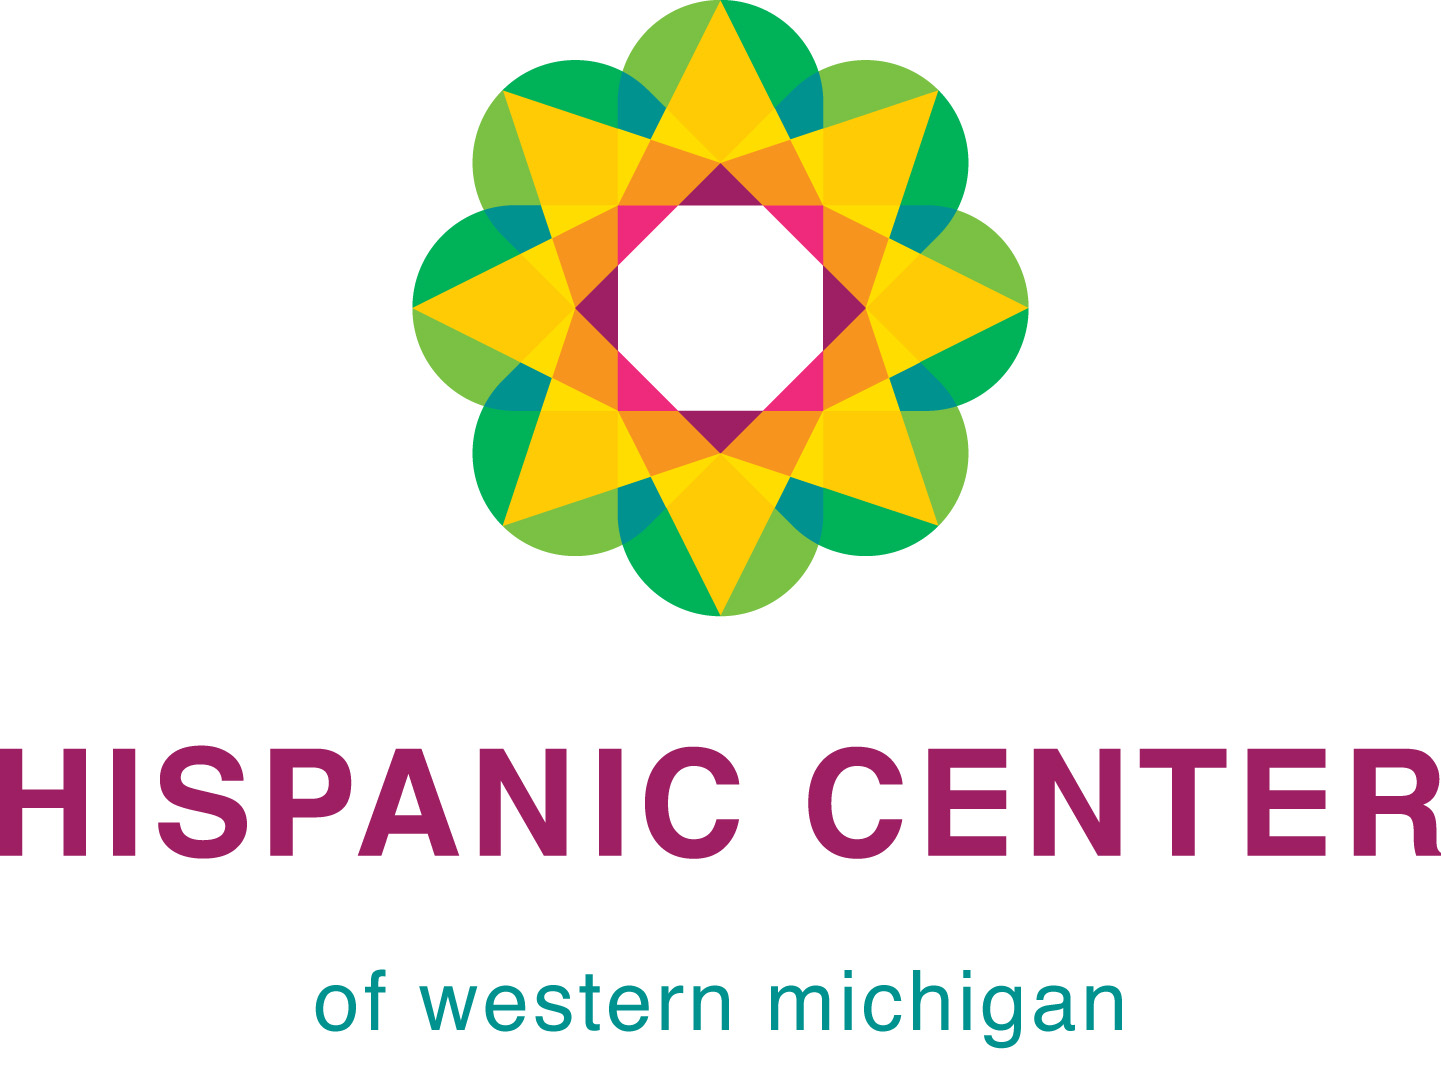 Logo_HISPANIC_CENTER - copia.jpg